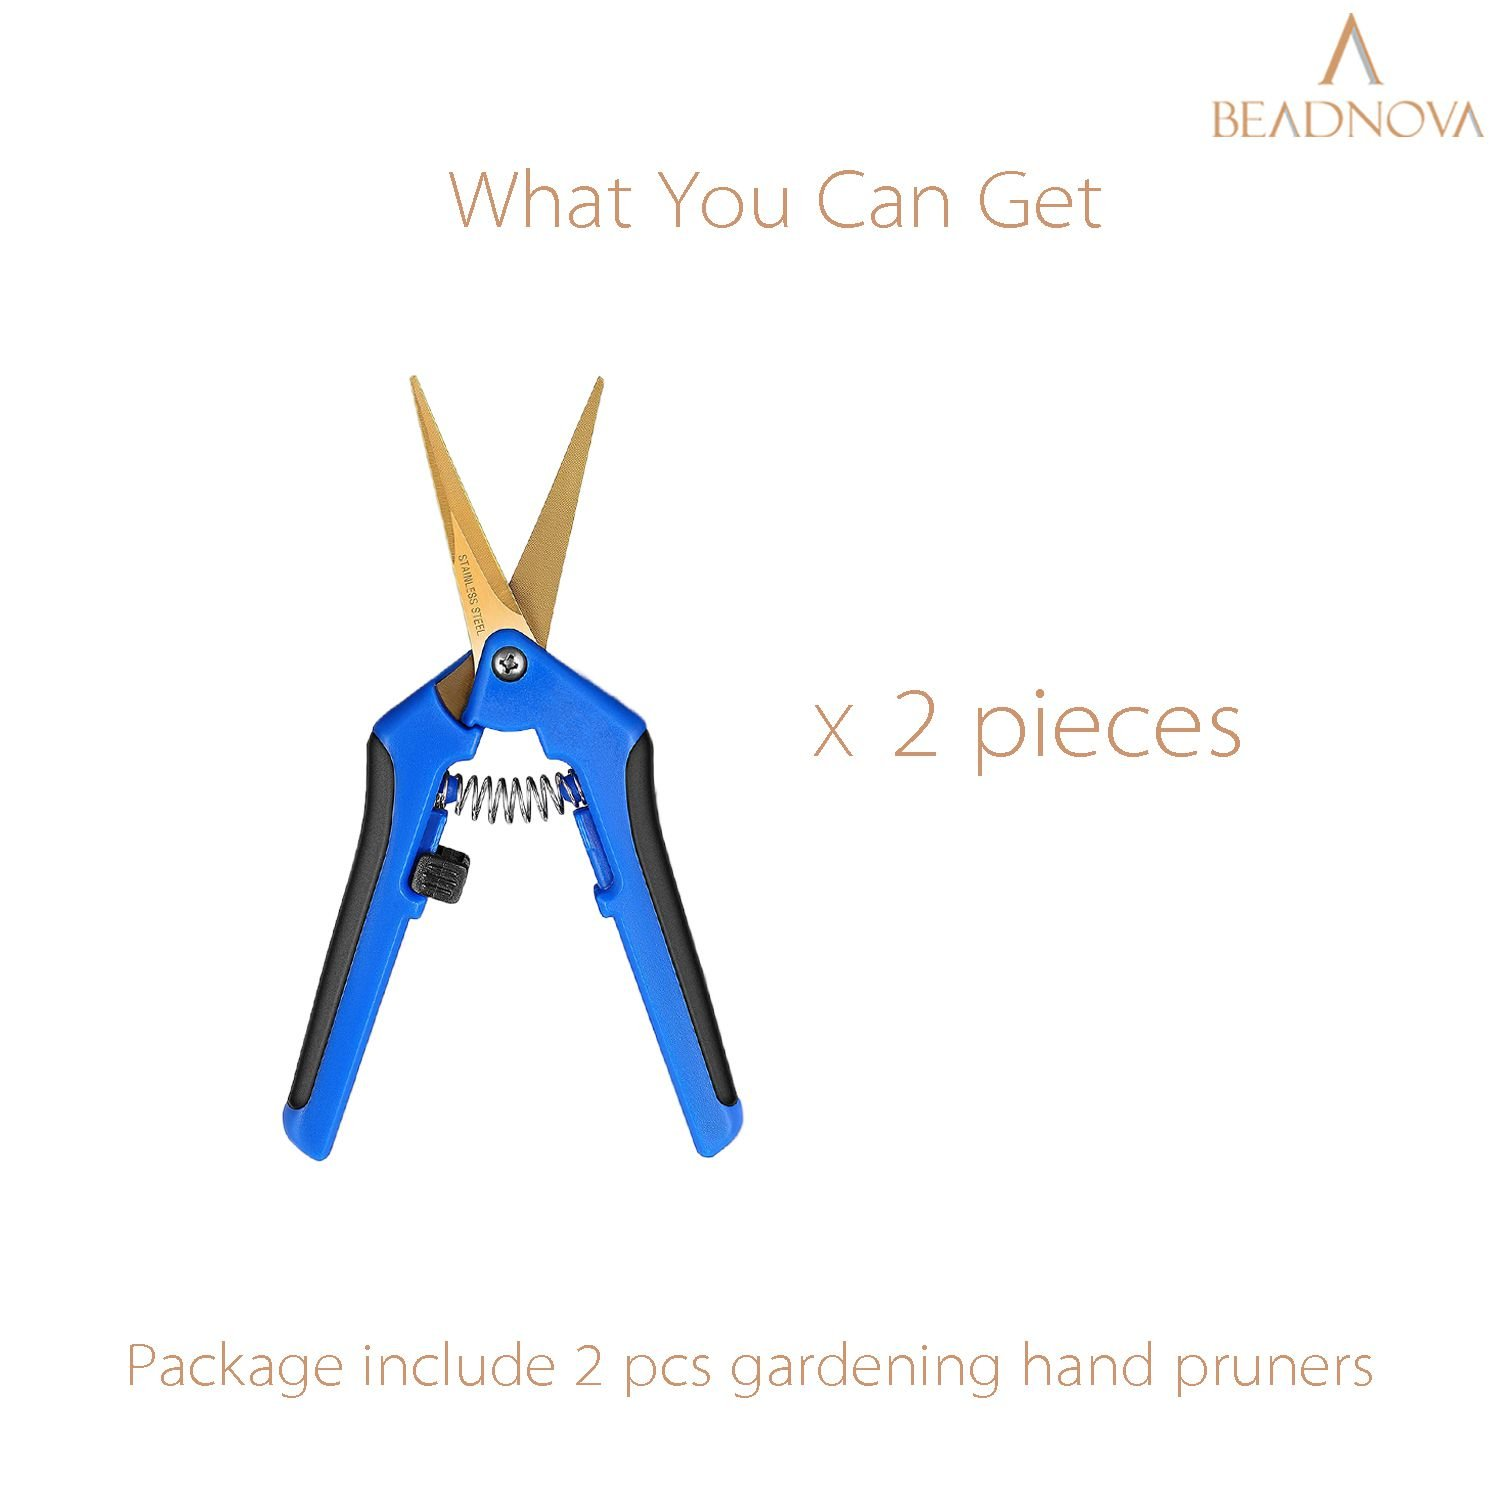 BEADNOVA Trimming Scissors Gardening Scissors Pruning Snips Garden Sheers with Curved Precision Blades Plant Trimmers Pruners for Gardening (Blue, 2 Pcs)